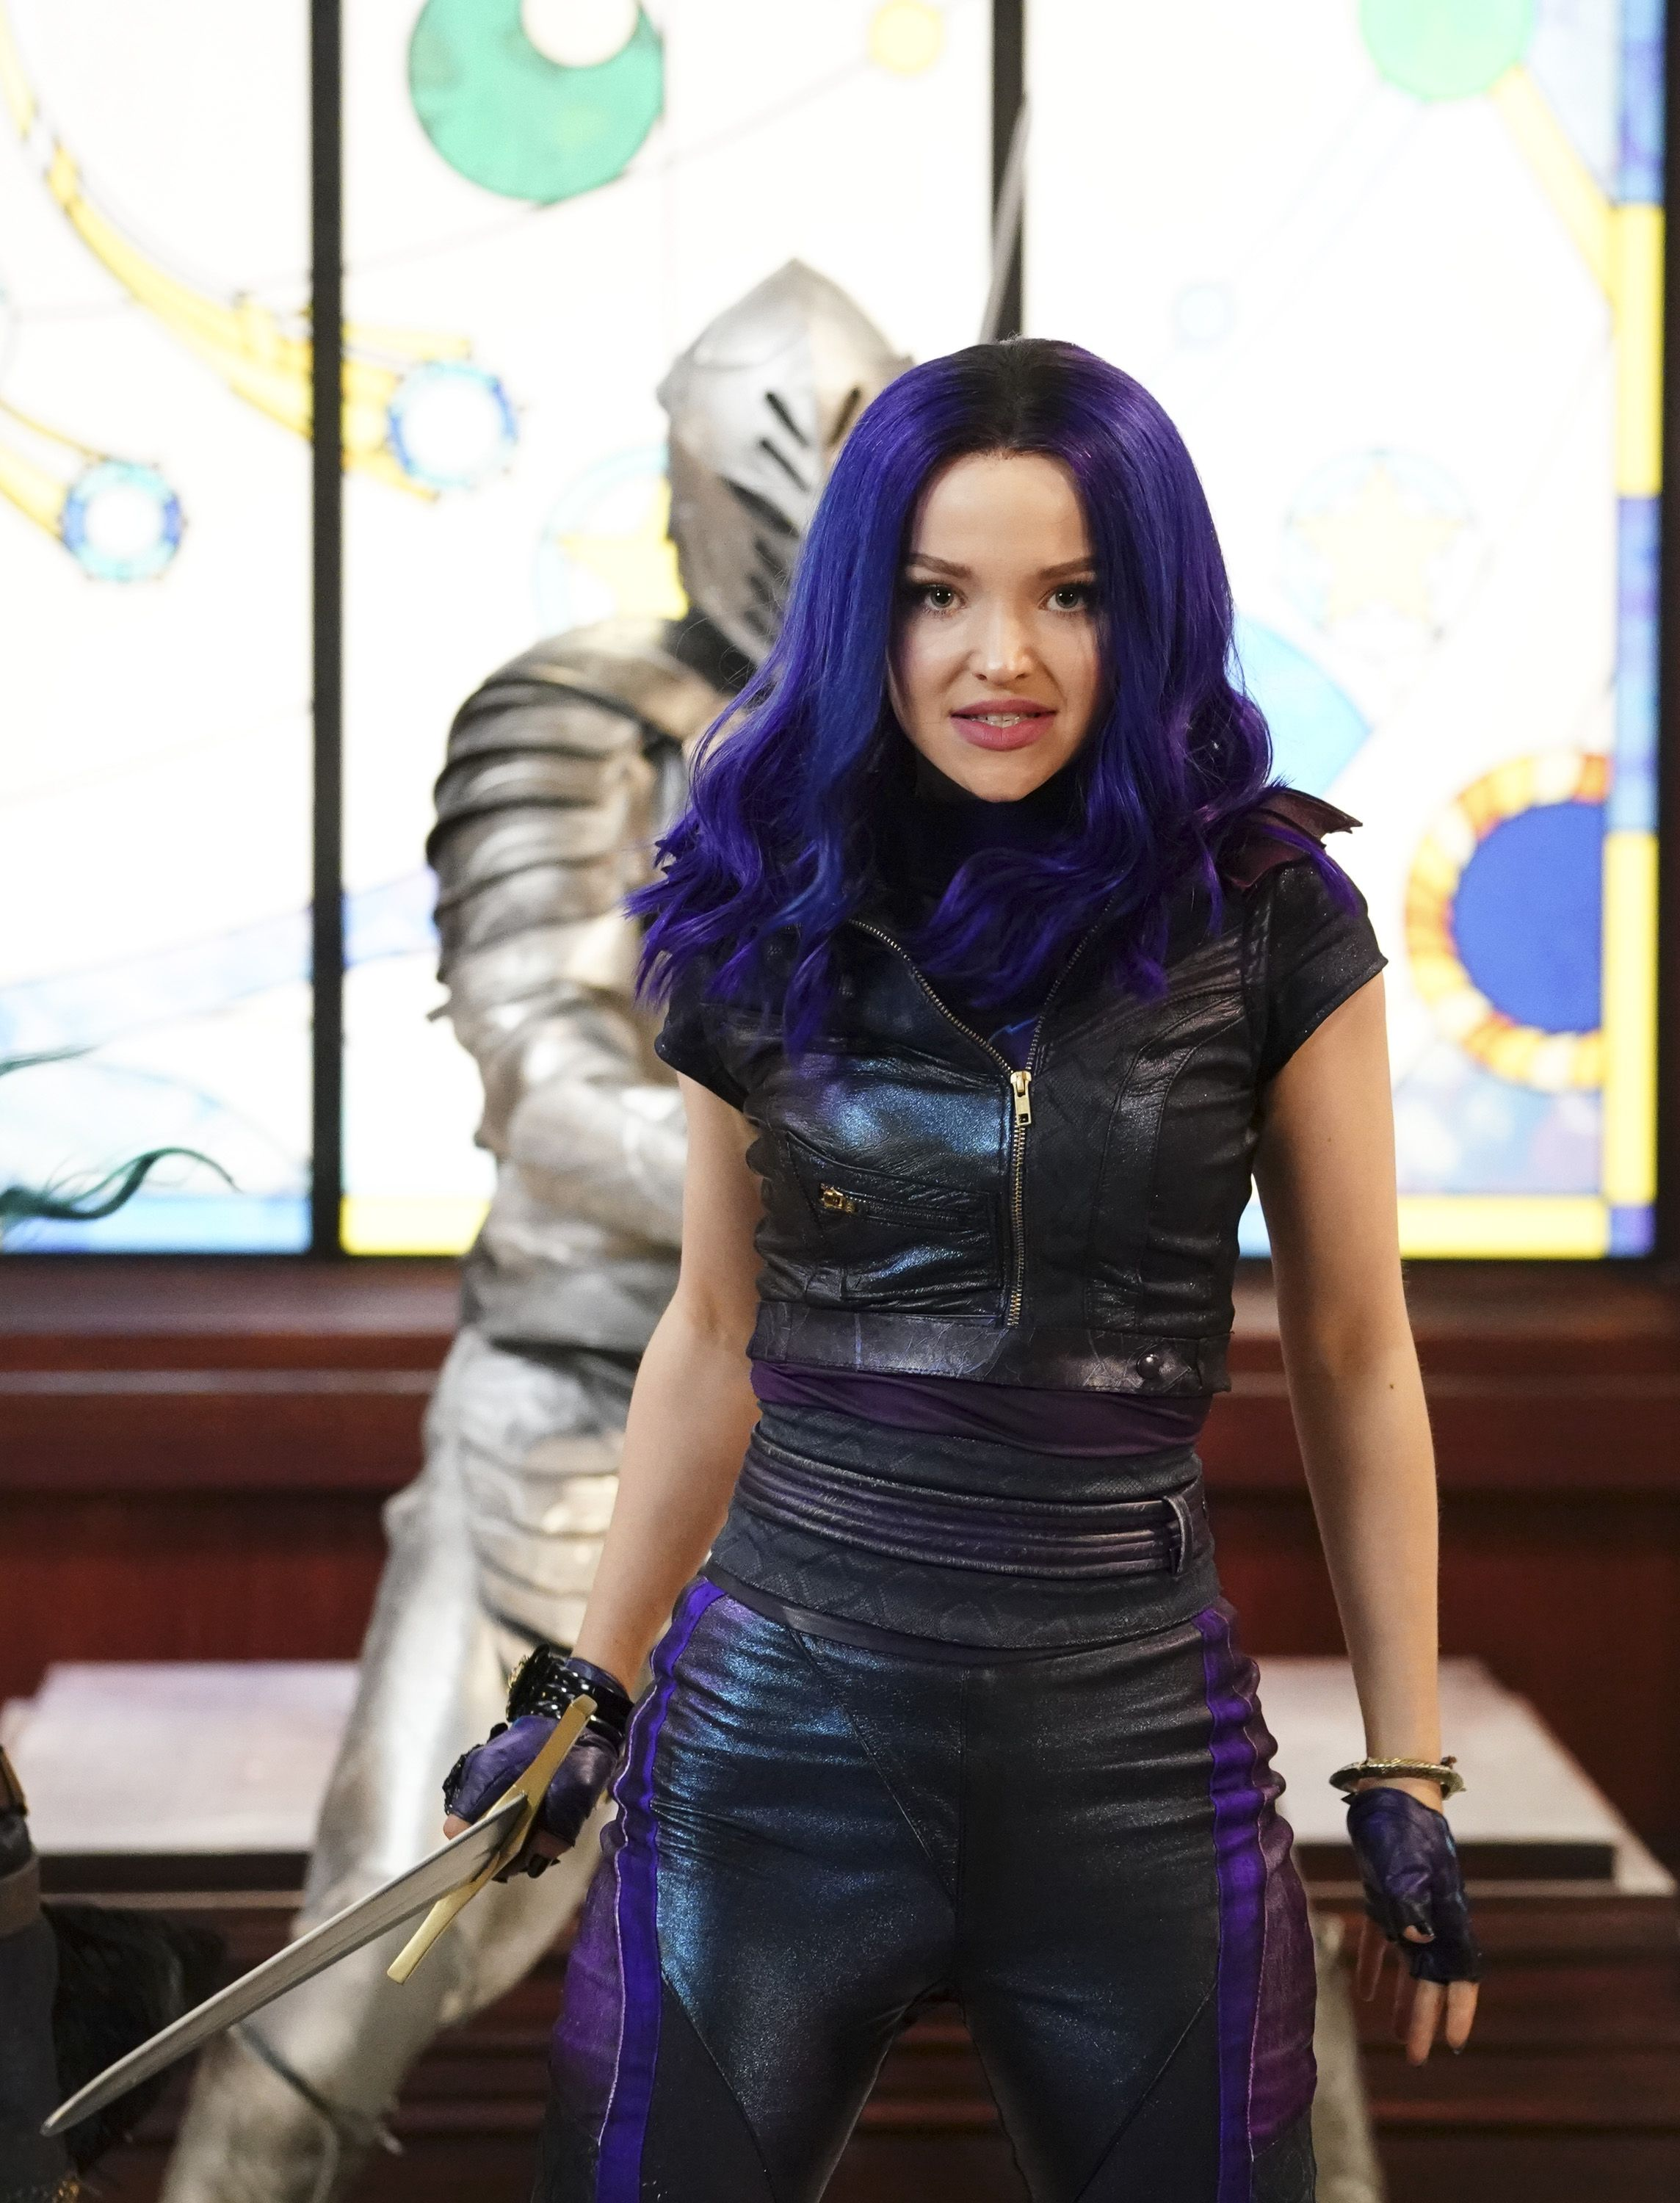 Descendants 3 Star Dove Cameron Talks About End Of Disney Series